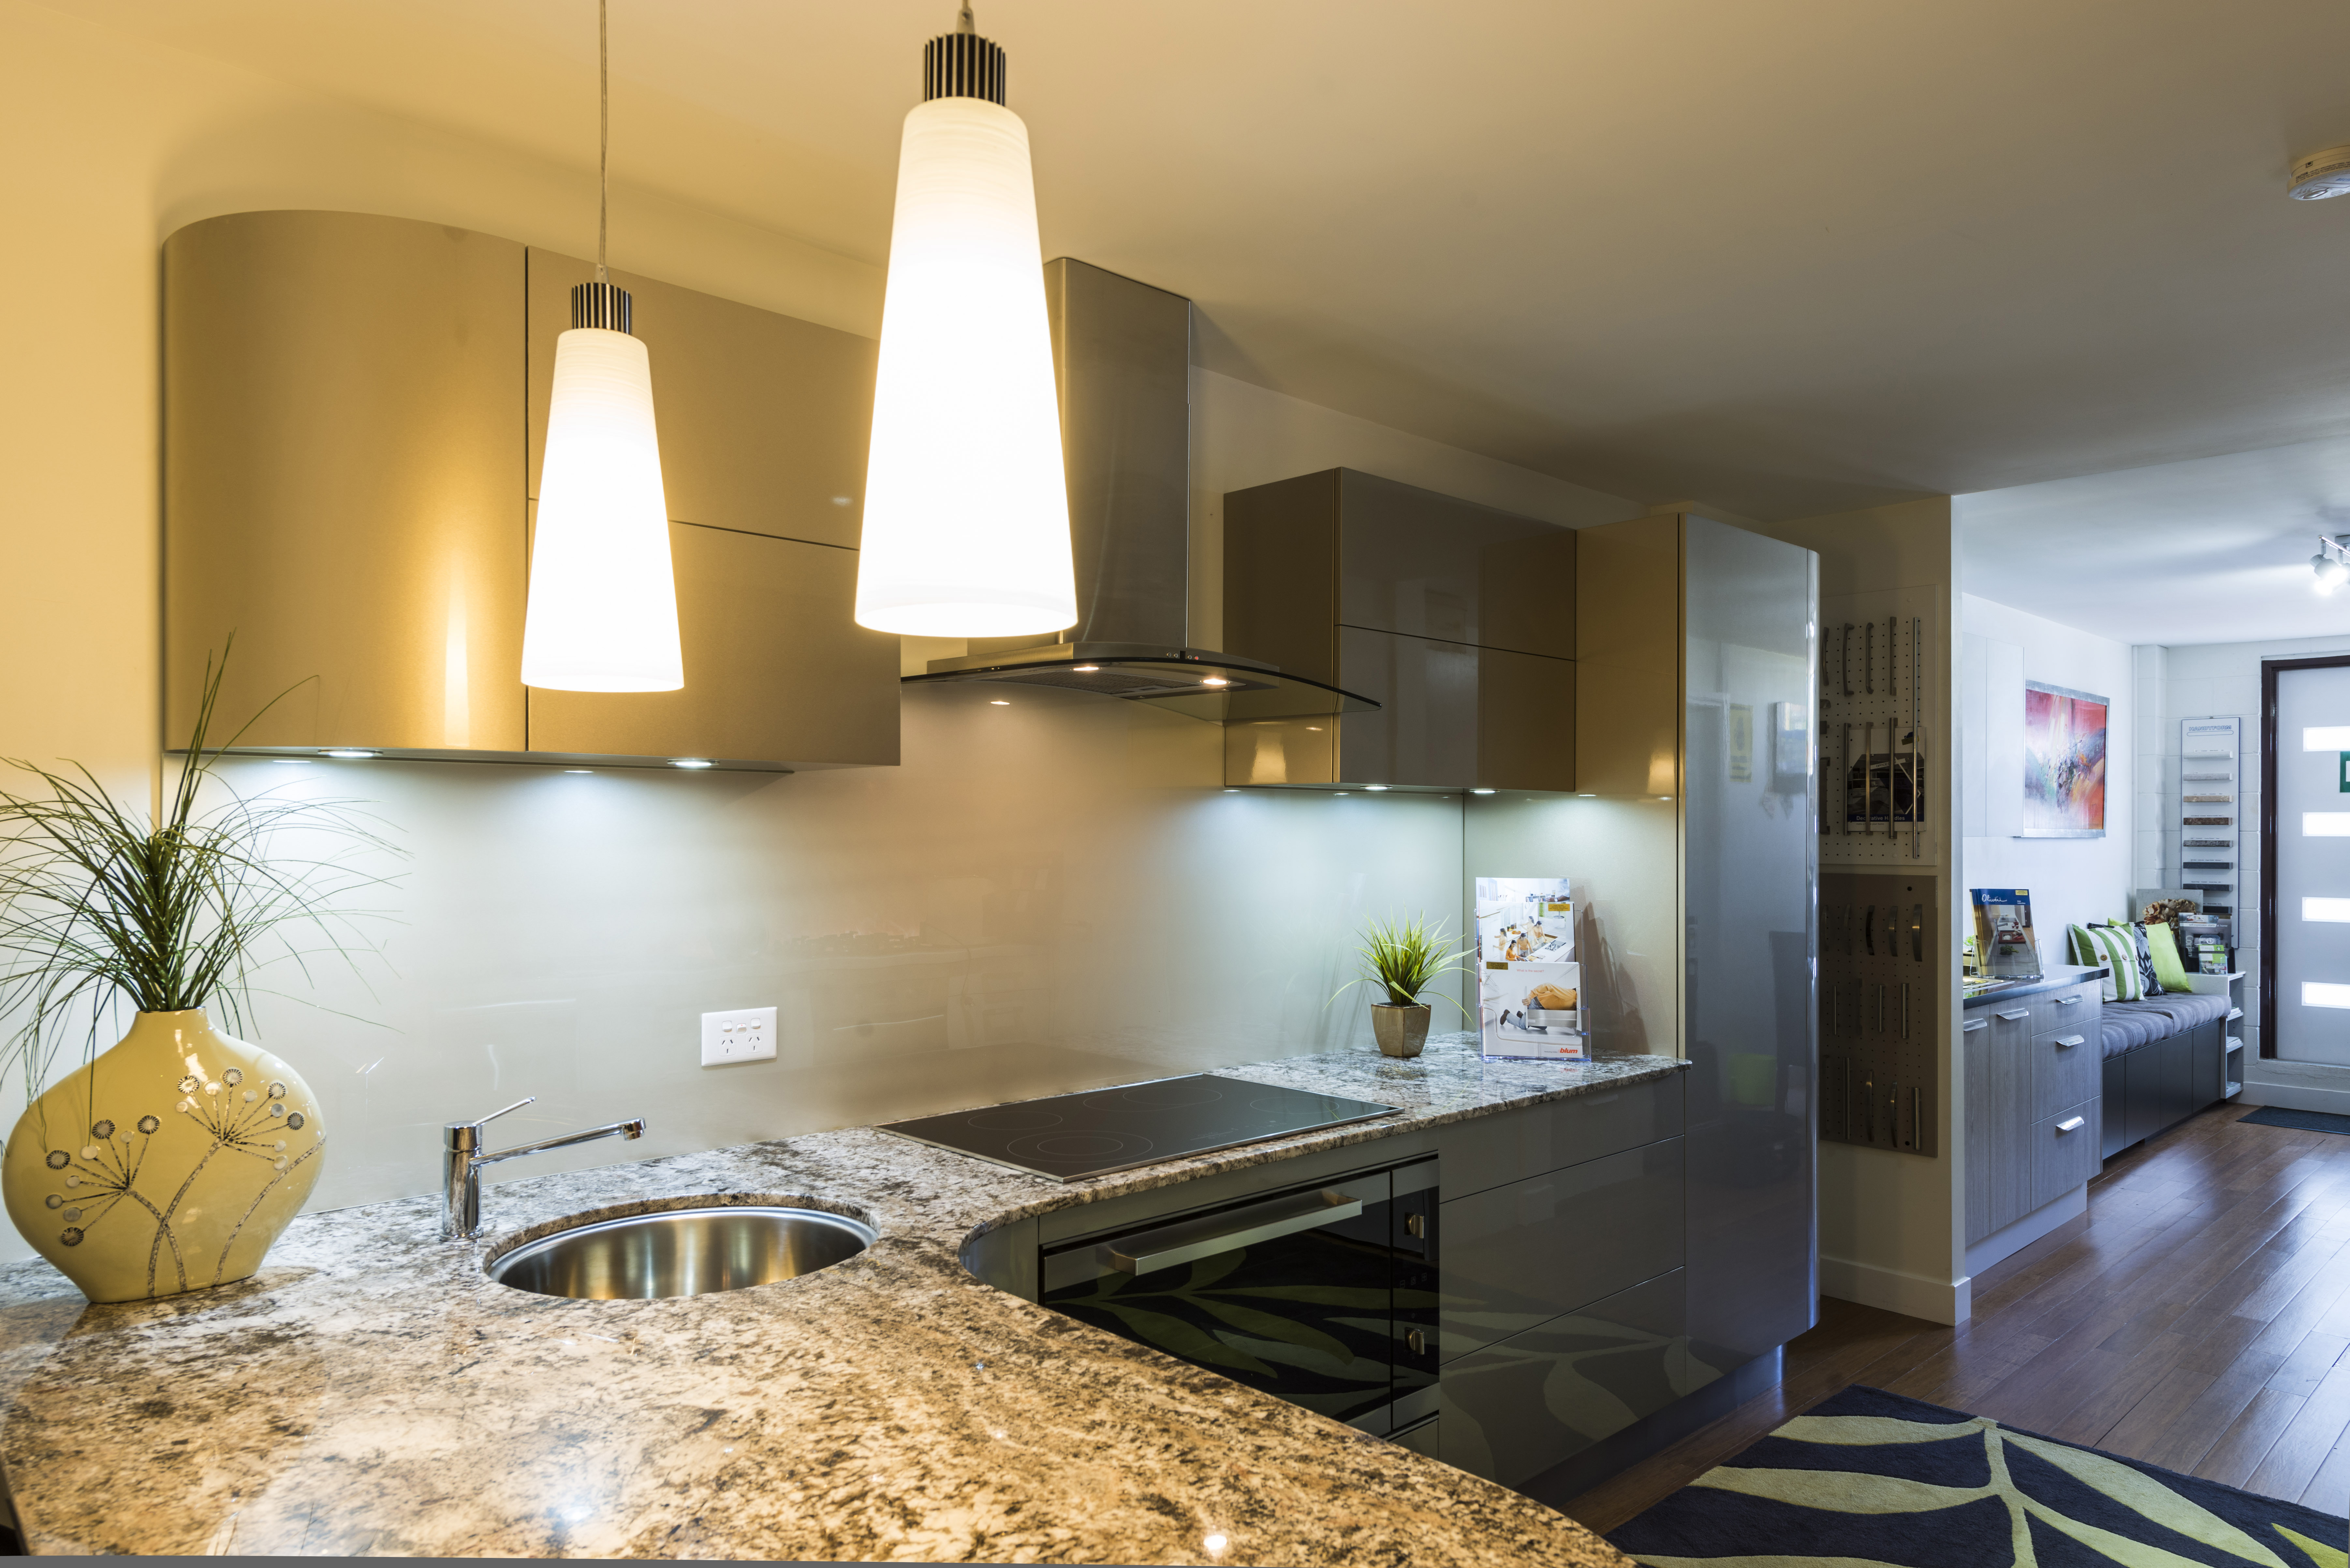 Insync Kitchens designs and ideas Queensland